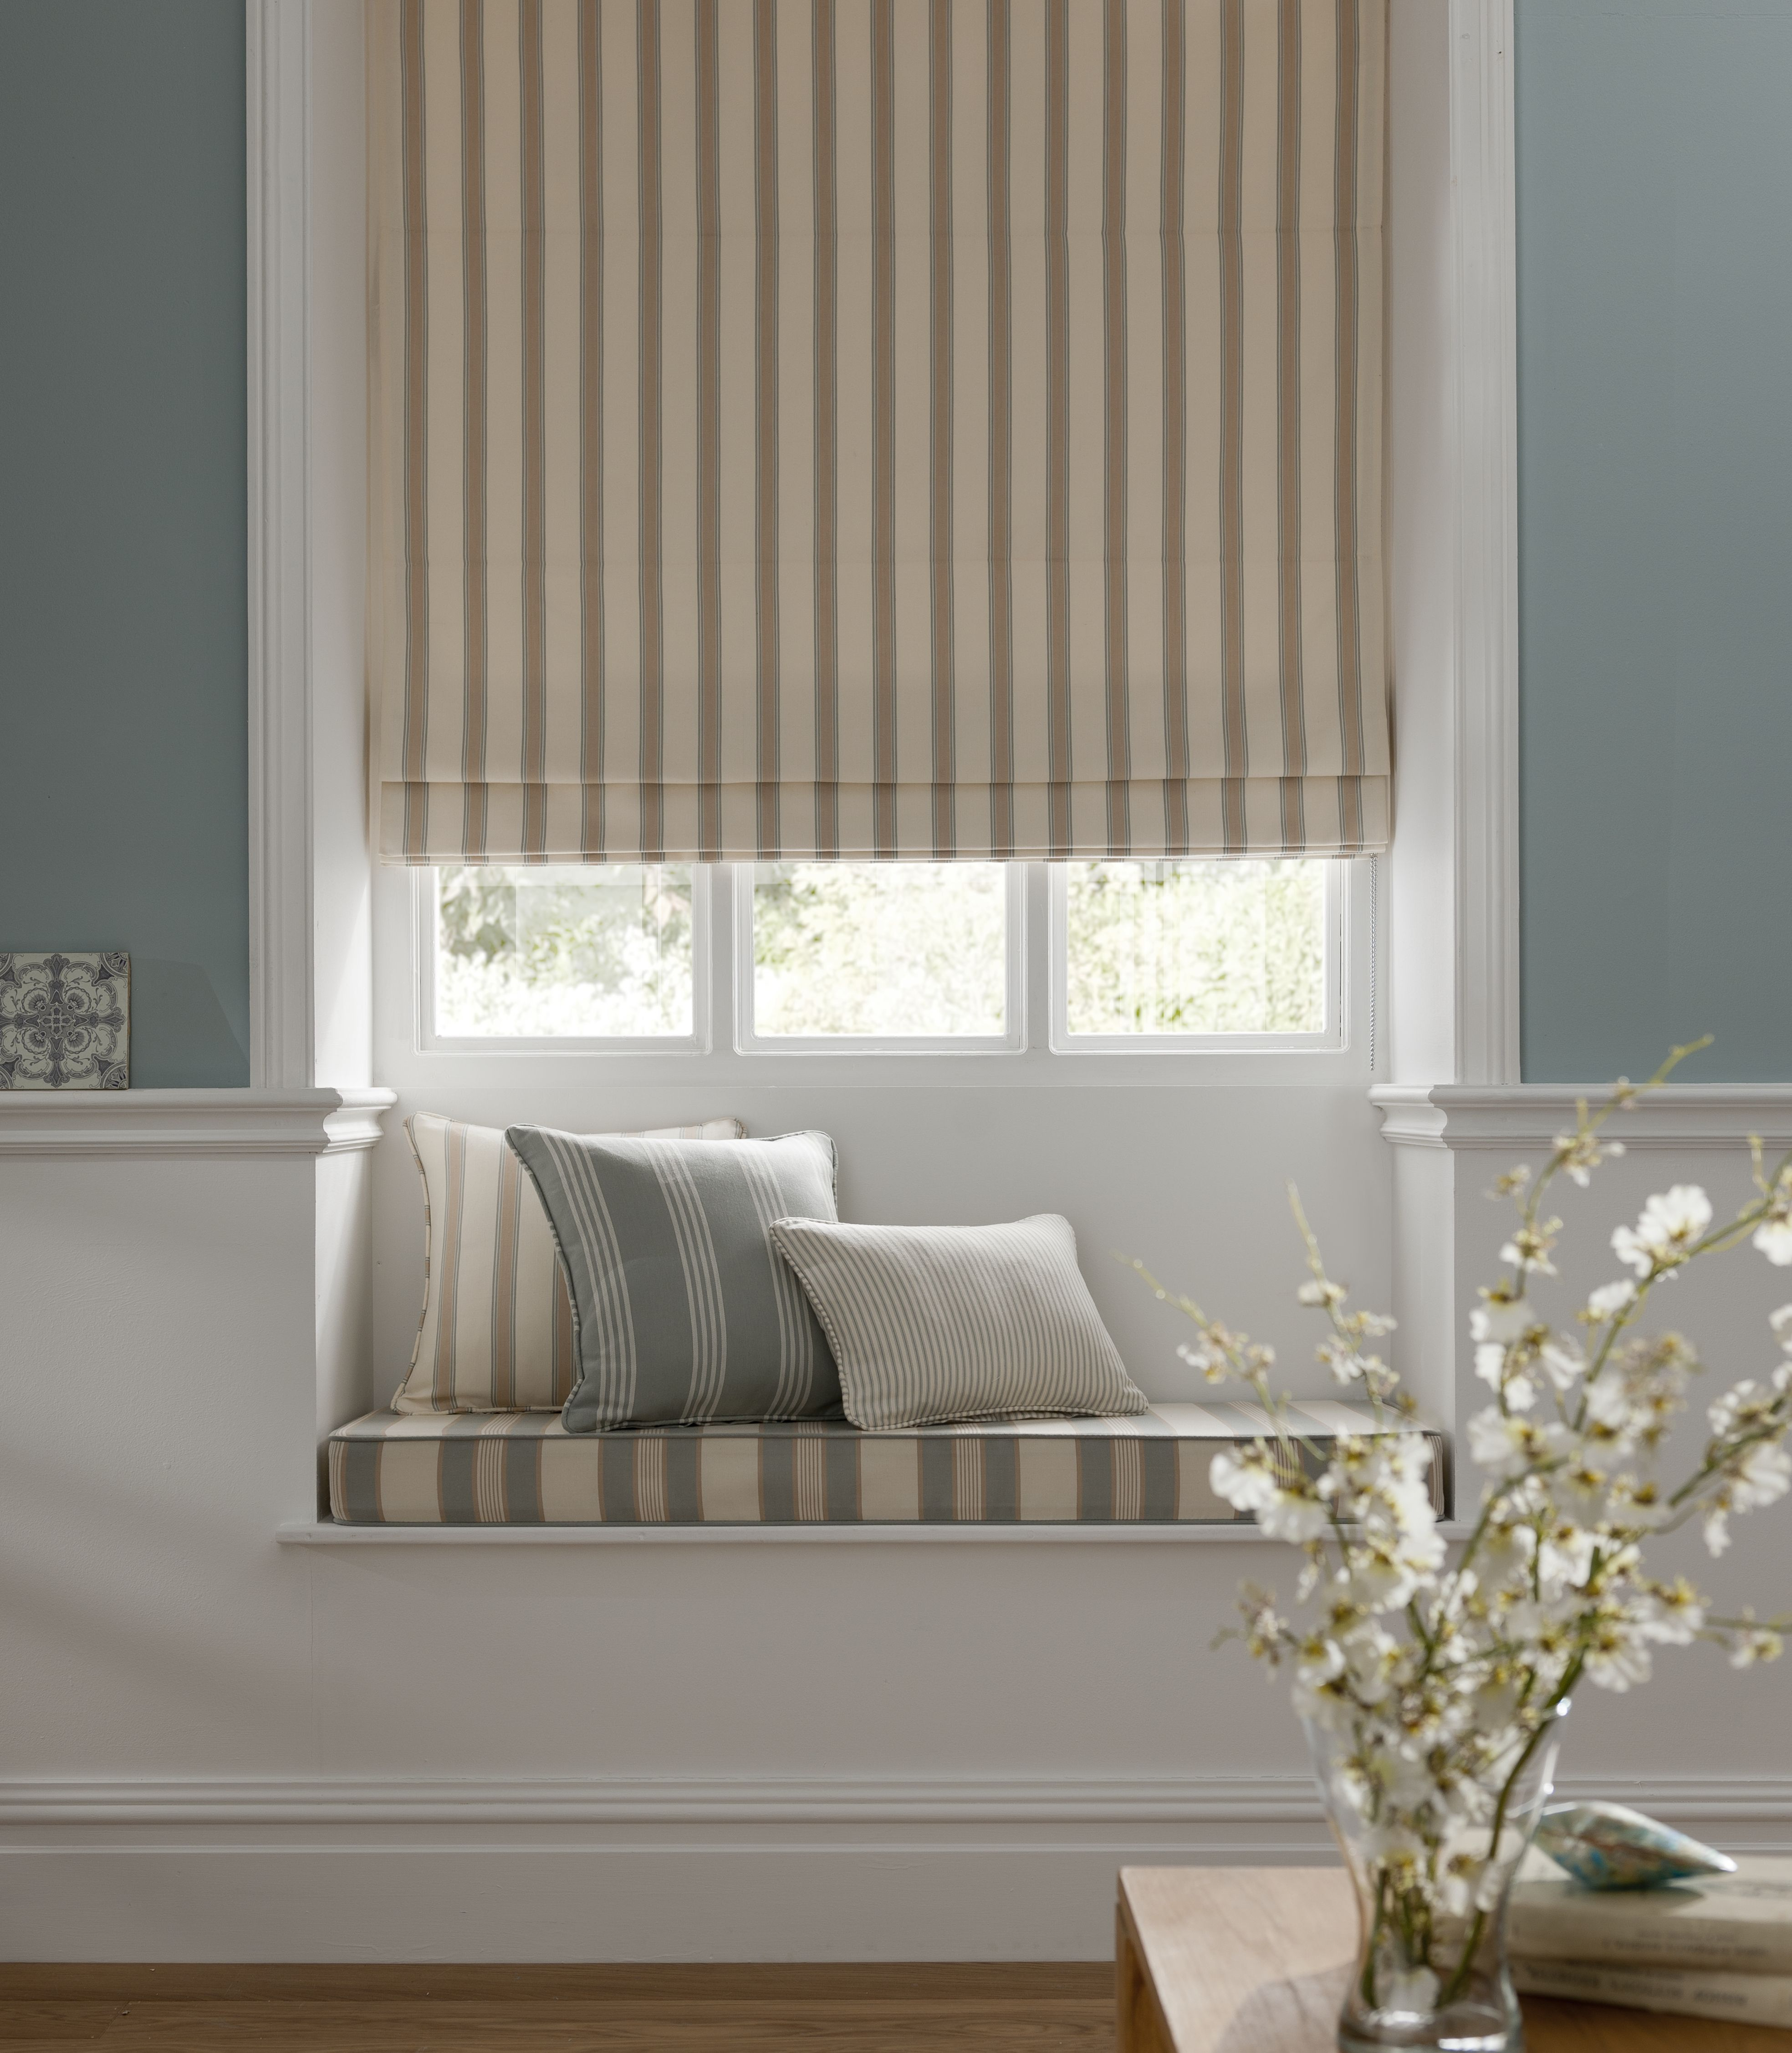 Villa Ticking Stripe Www Lahood Co Nz Roman Blinds Living Room Curtains With Blinds Roman Blinds